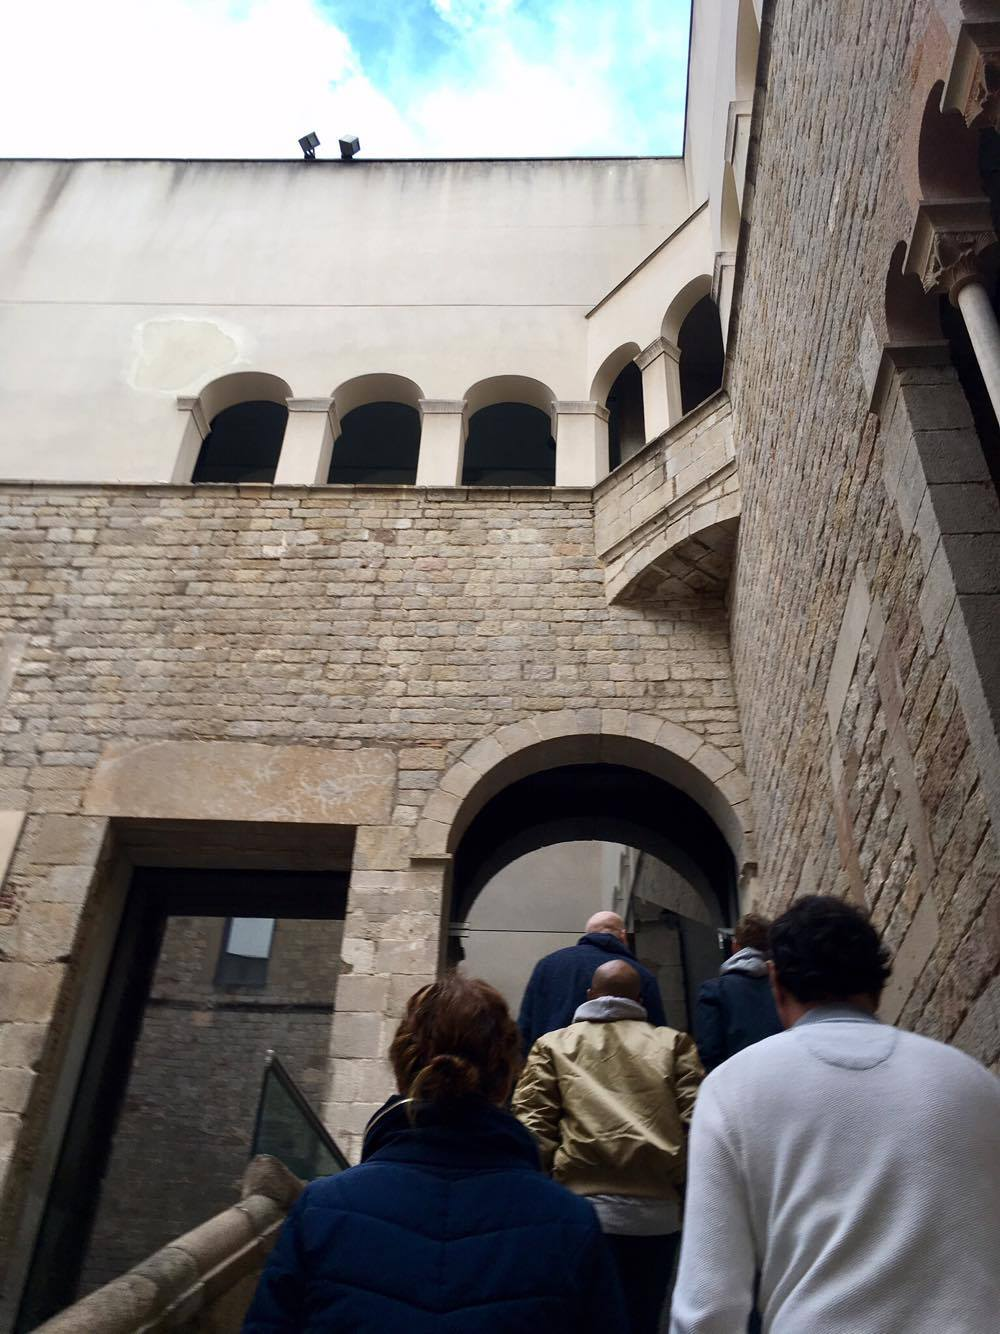 Entering the museum: online tickets may be best to avoid lines